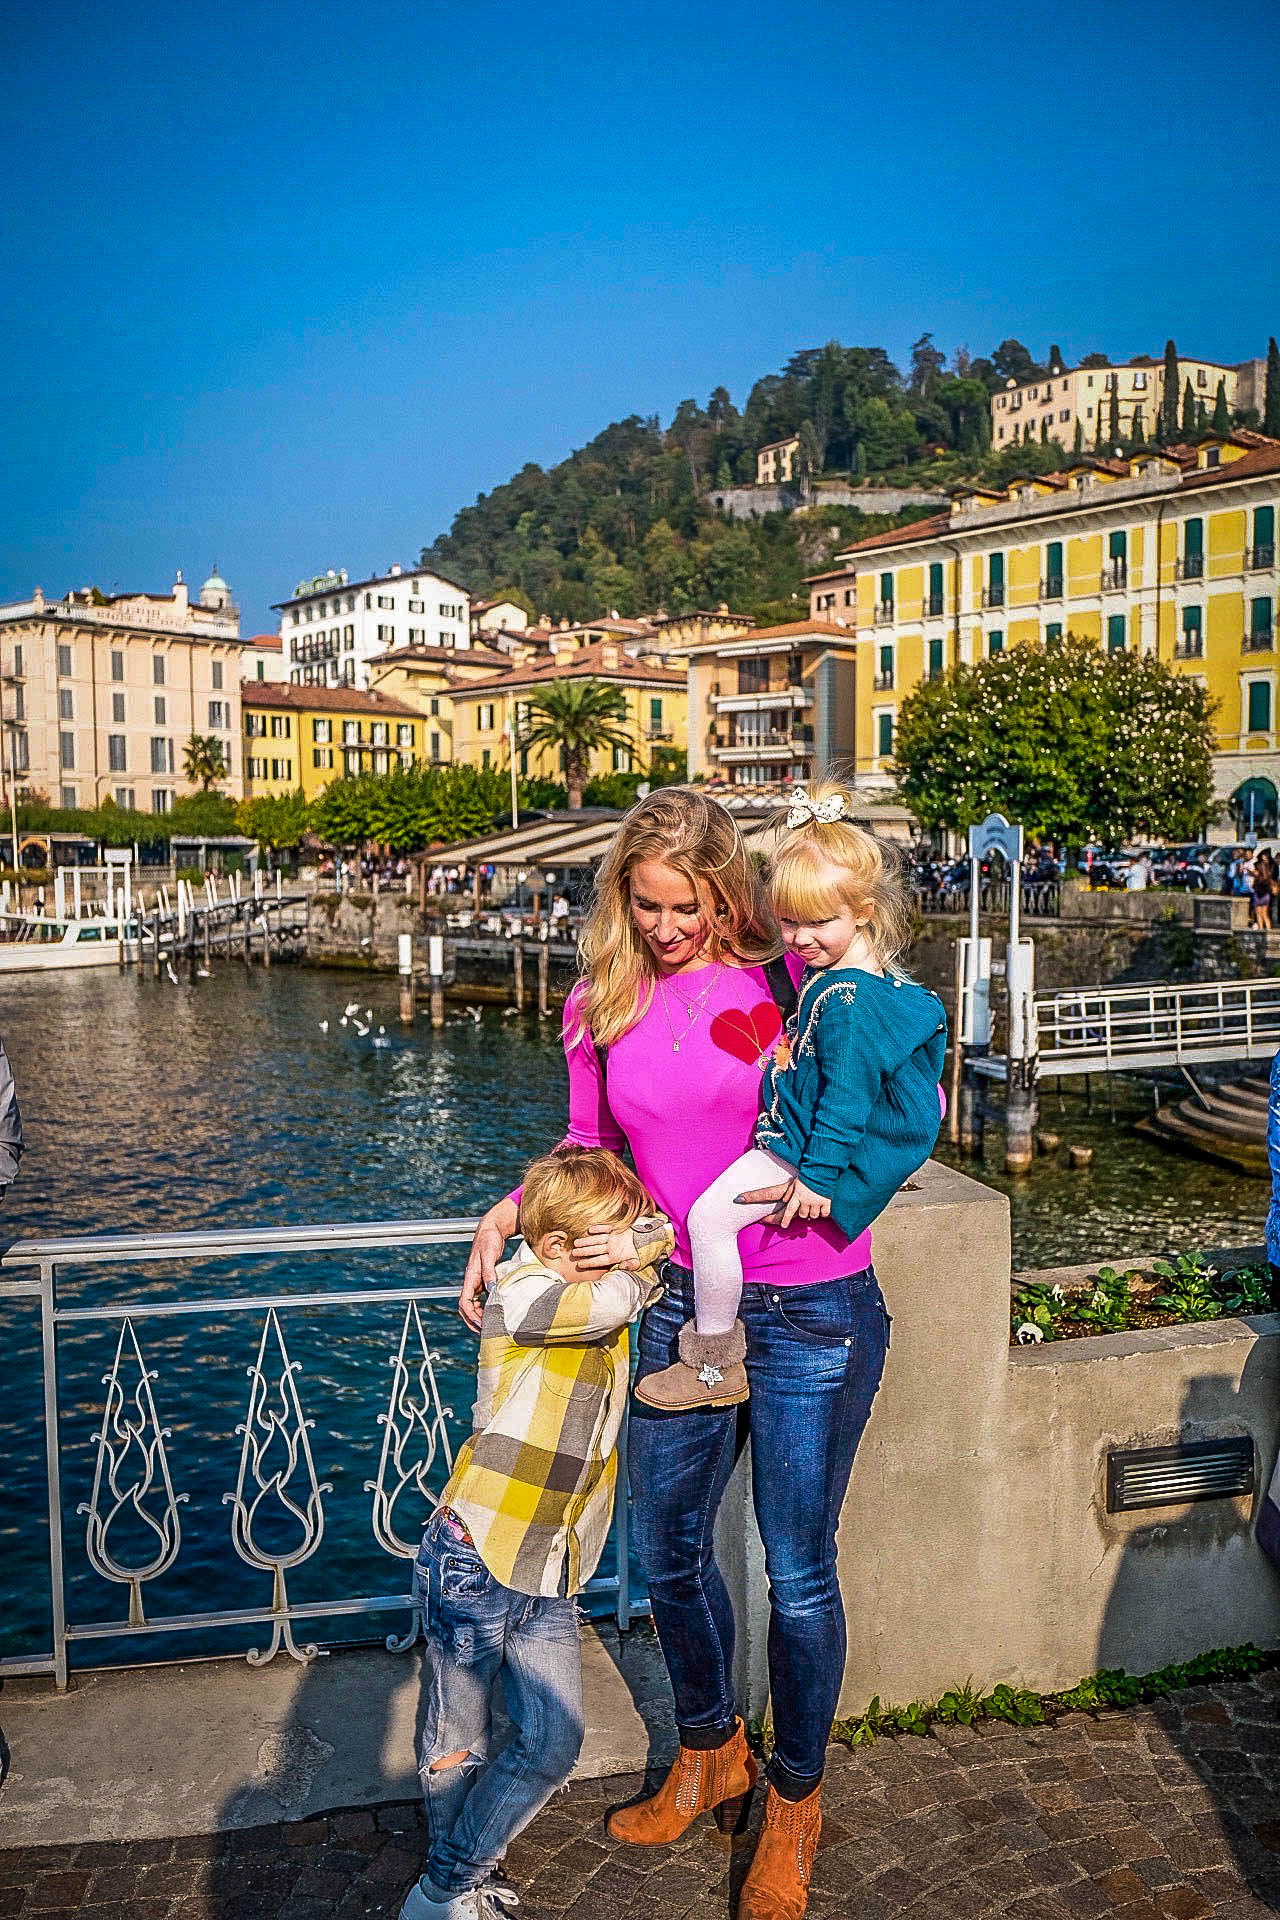 Headed to Lugano Switzerland? Popular Atlanta Blogger Happily Hughes is sharing where to eat, stay and do in her Family Travel Guide to Lugano Switzerland here!